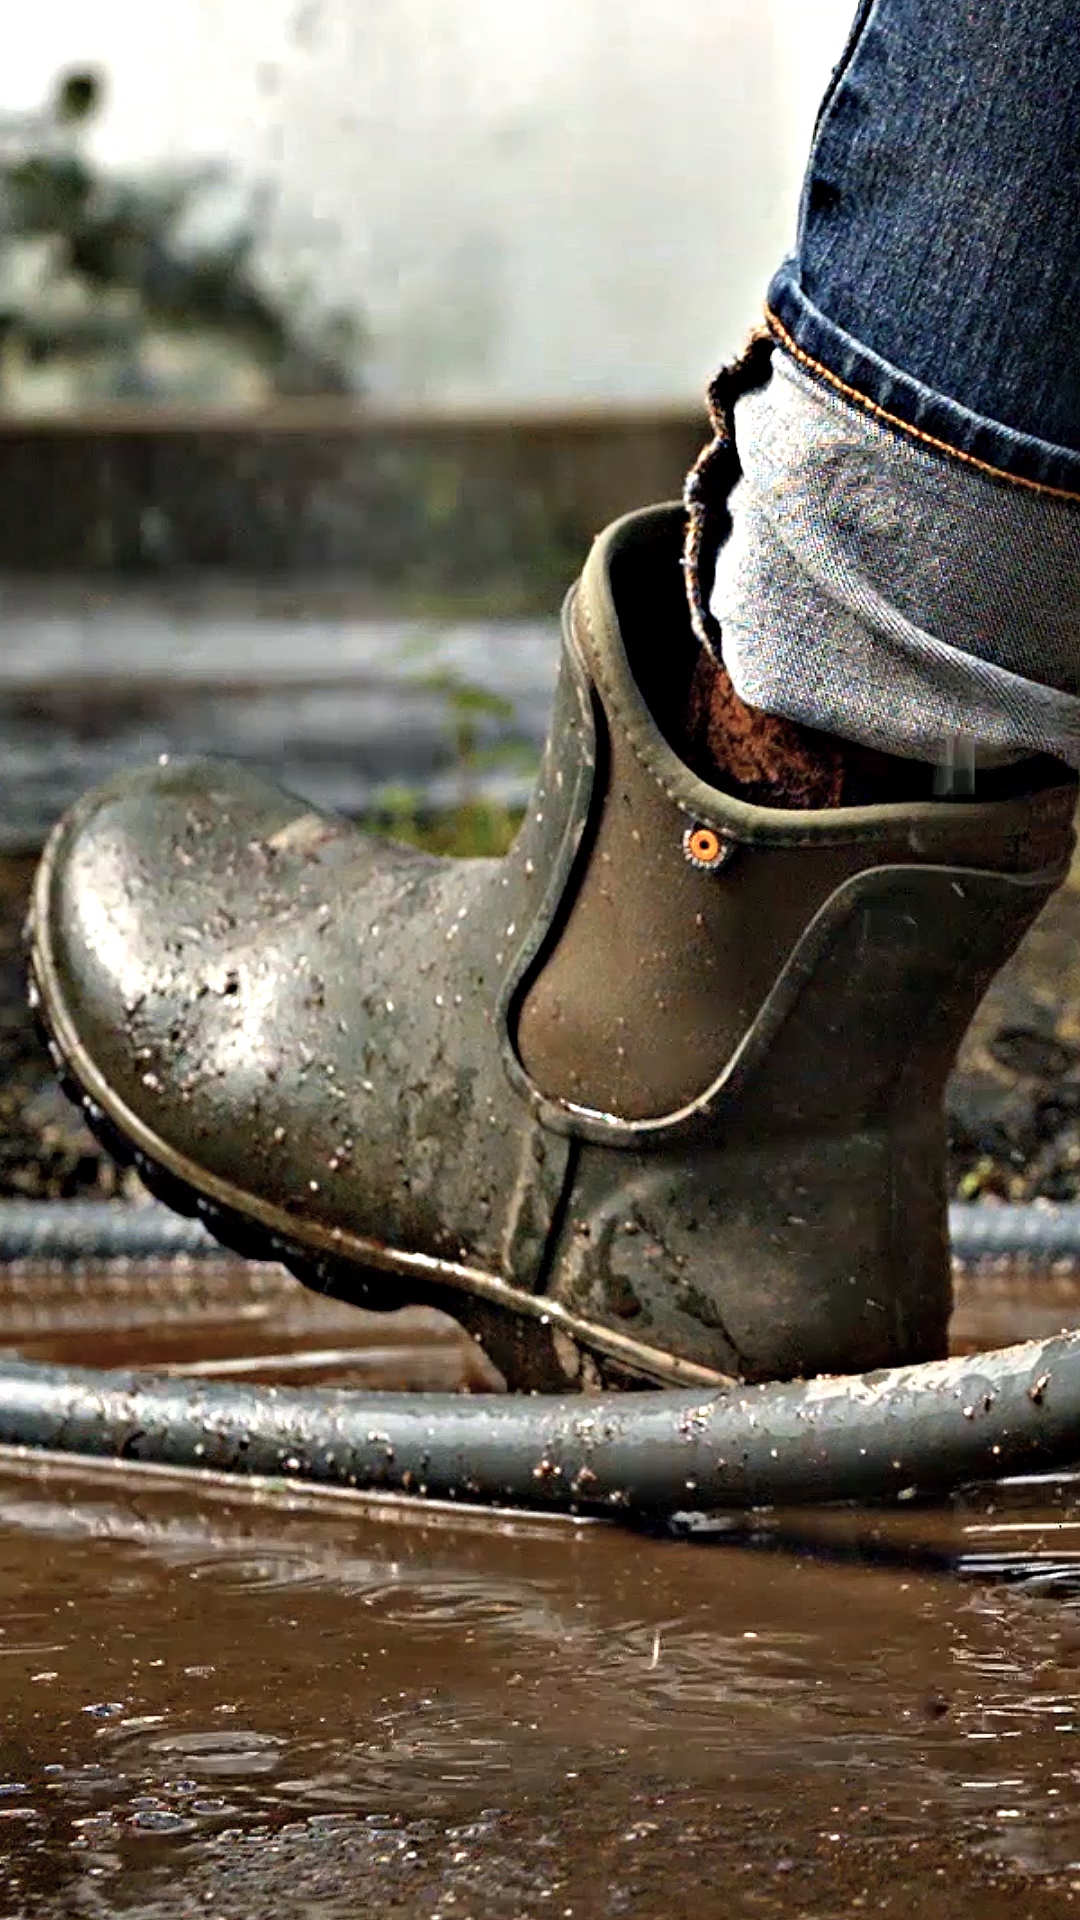 a4db3857adbba Bogs Sauvie Slip On Boot Women's Waterproof Boots. What do you wanna do  with your day? This boot will go anywhere you want to go and do everything  you want ...